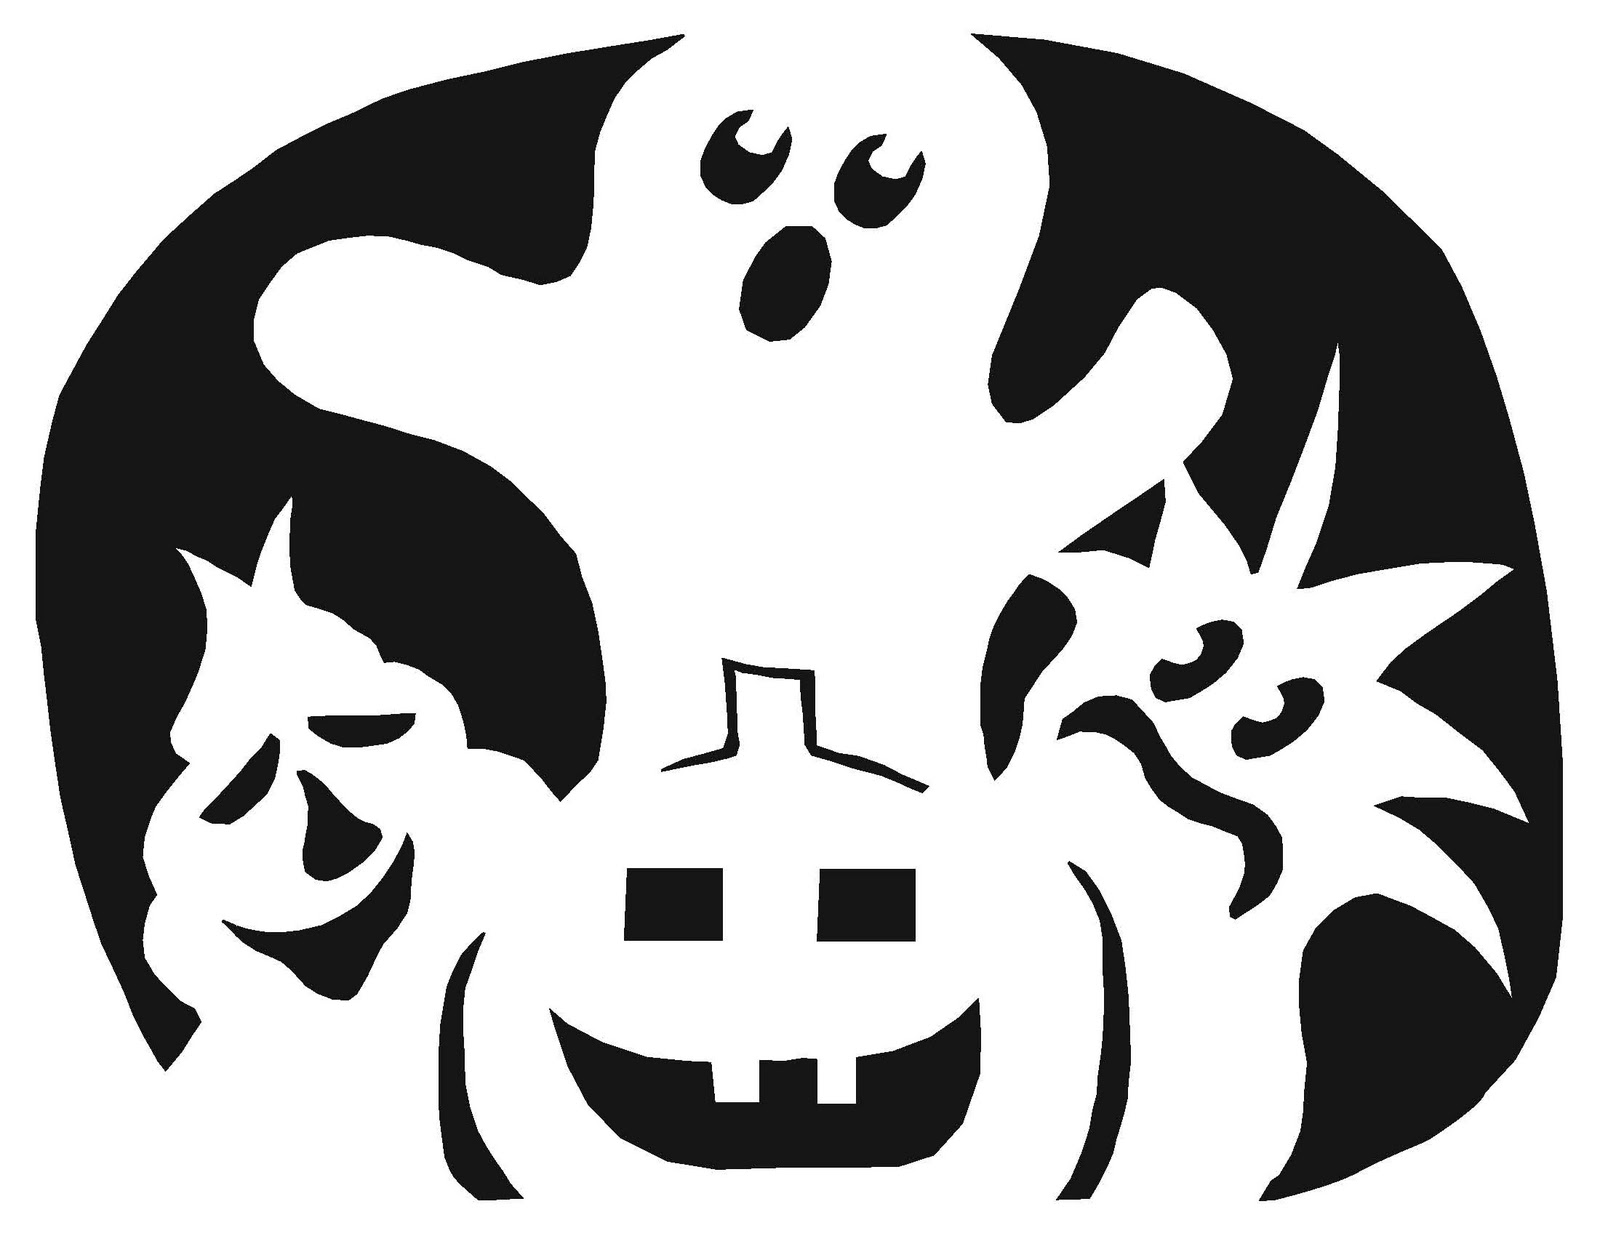 pumpkin templates free printable - pumpkin carving templates